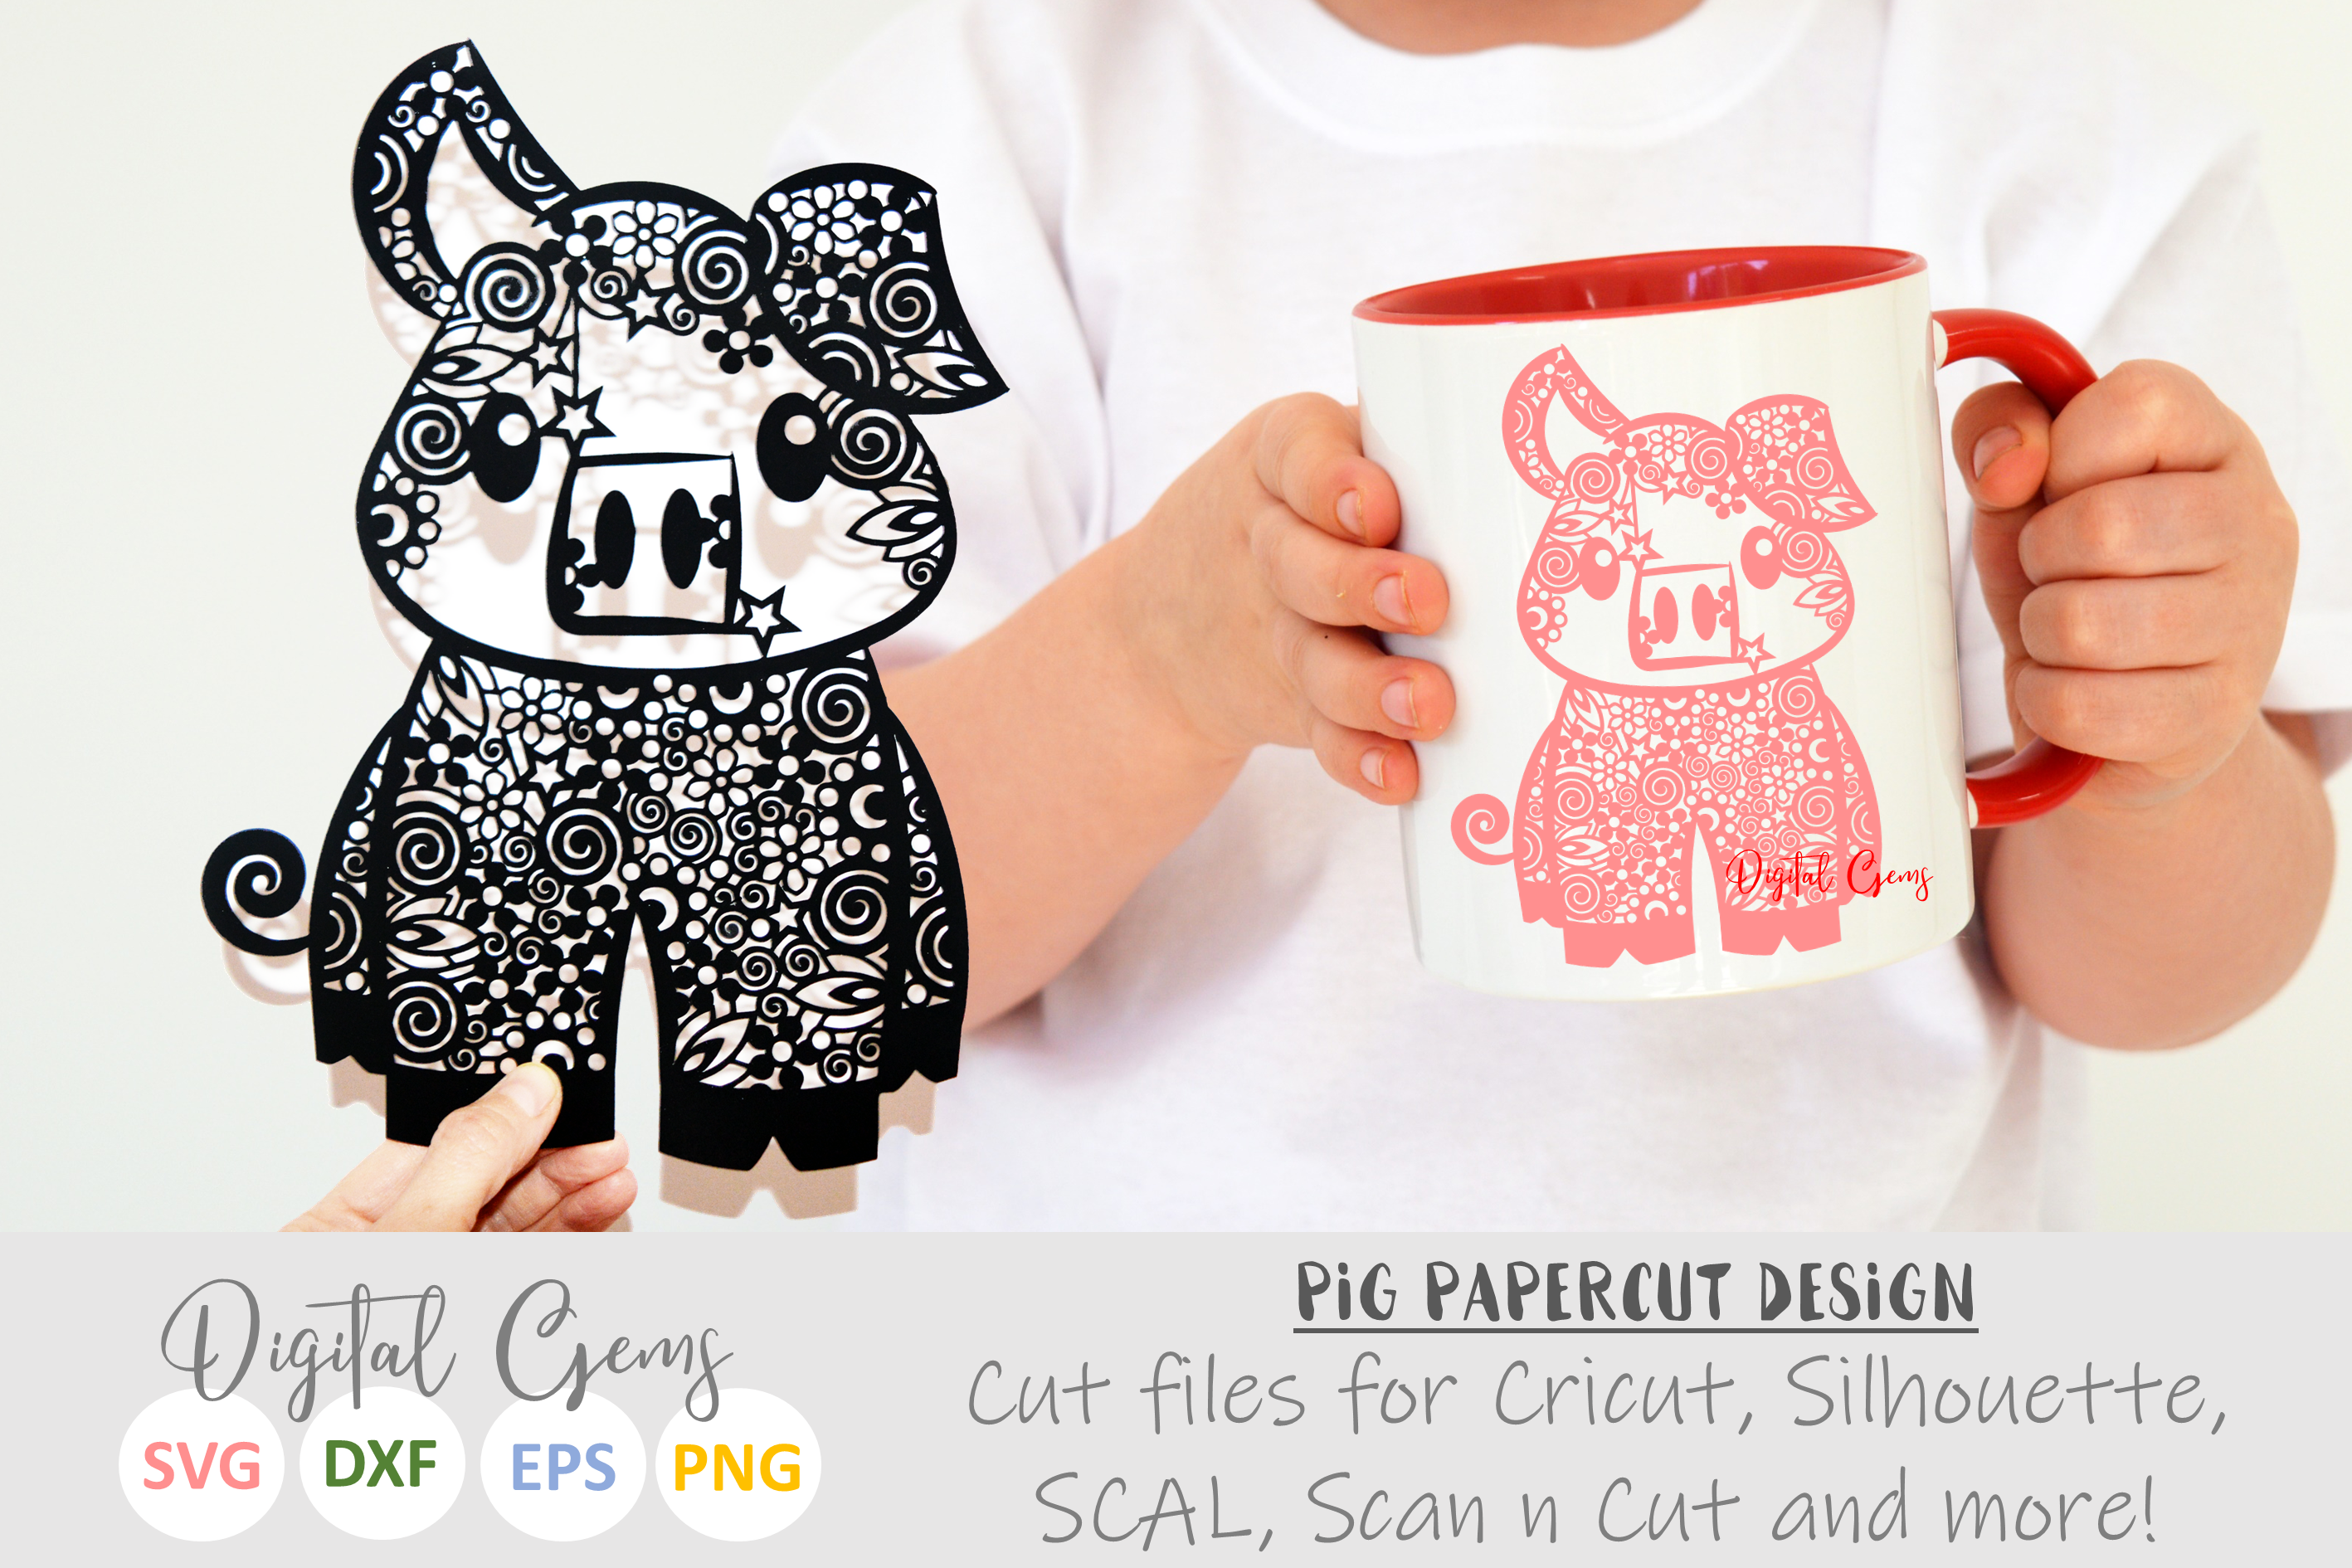 Pig paper cut SVG / DXF / EPS / PNG files example image 1